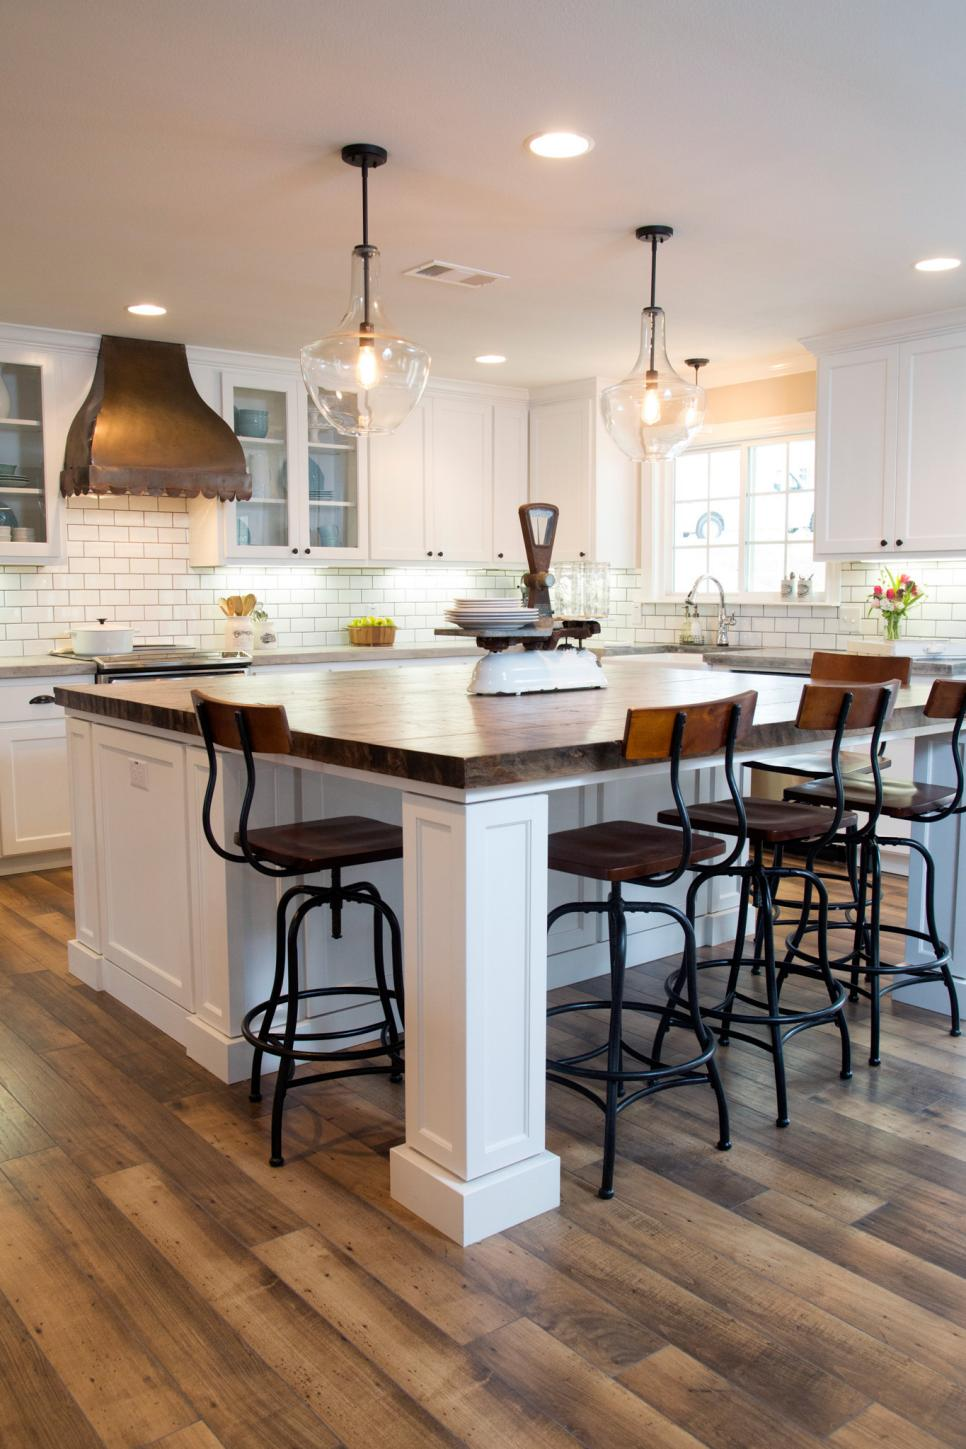 impressing kitchen island seating. Dining Table Kitchen Island Impressing Seating P